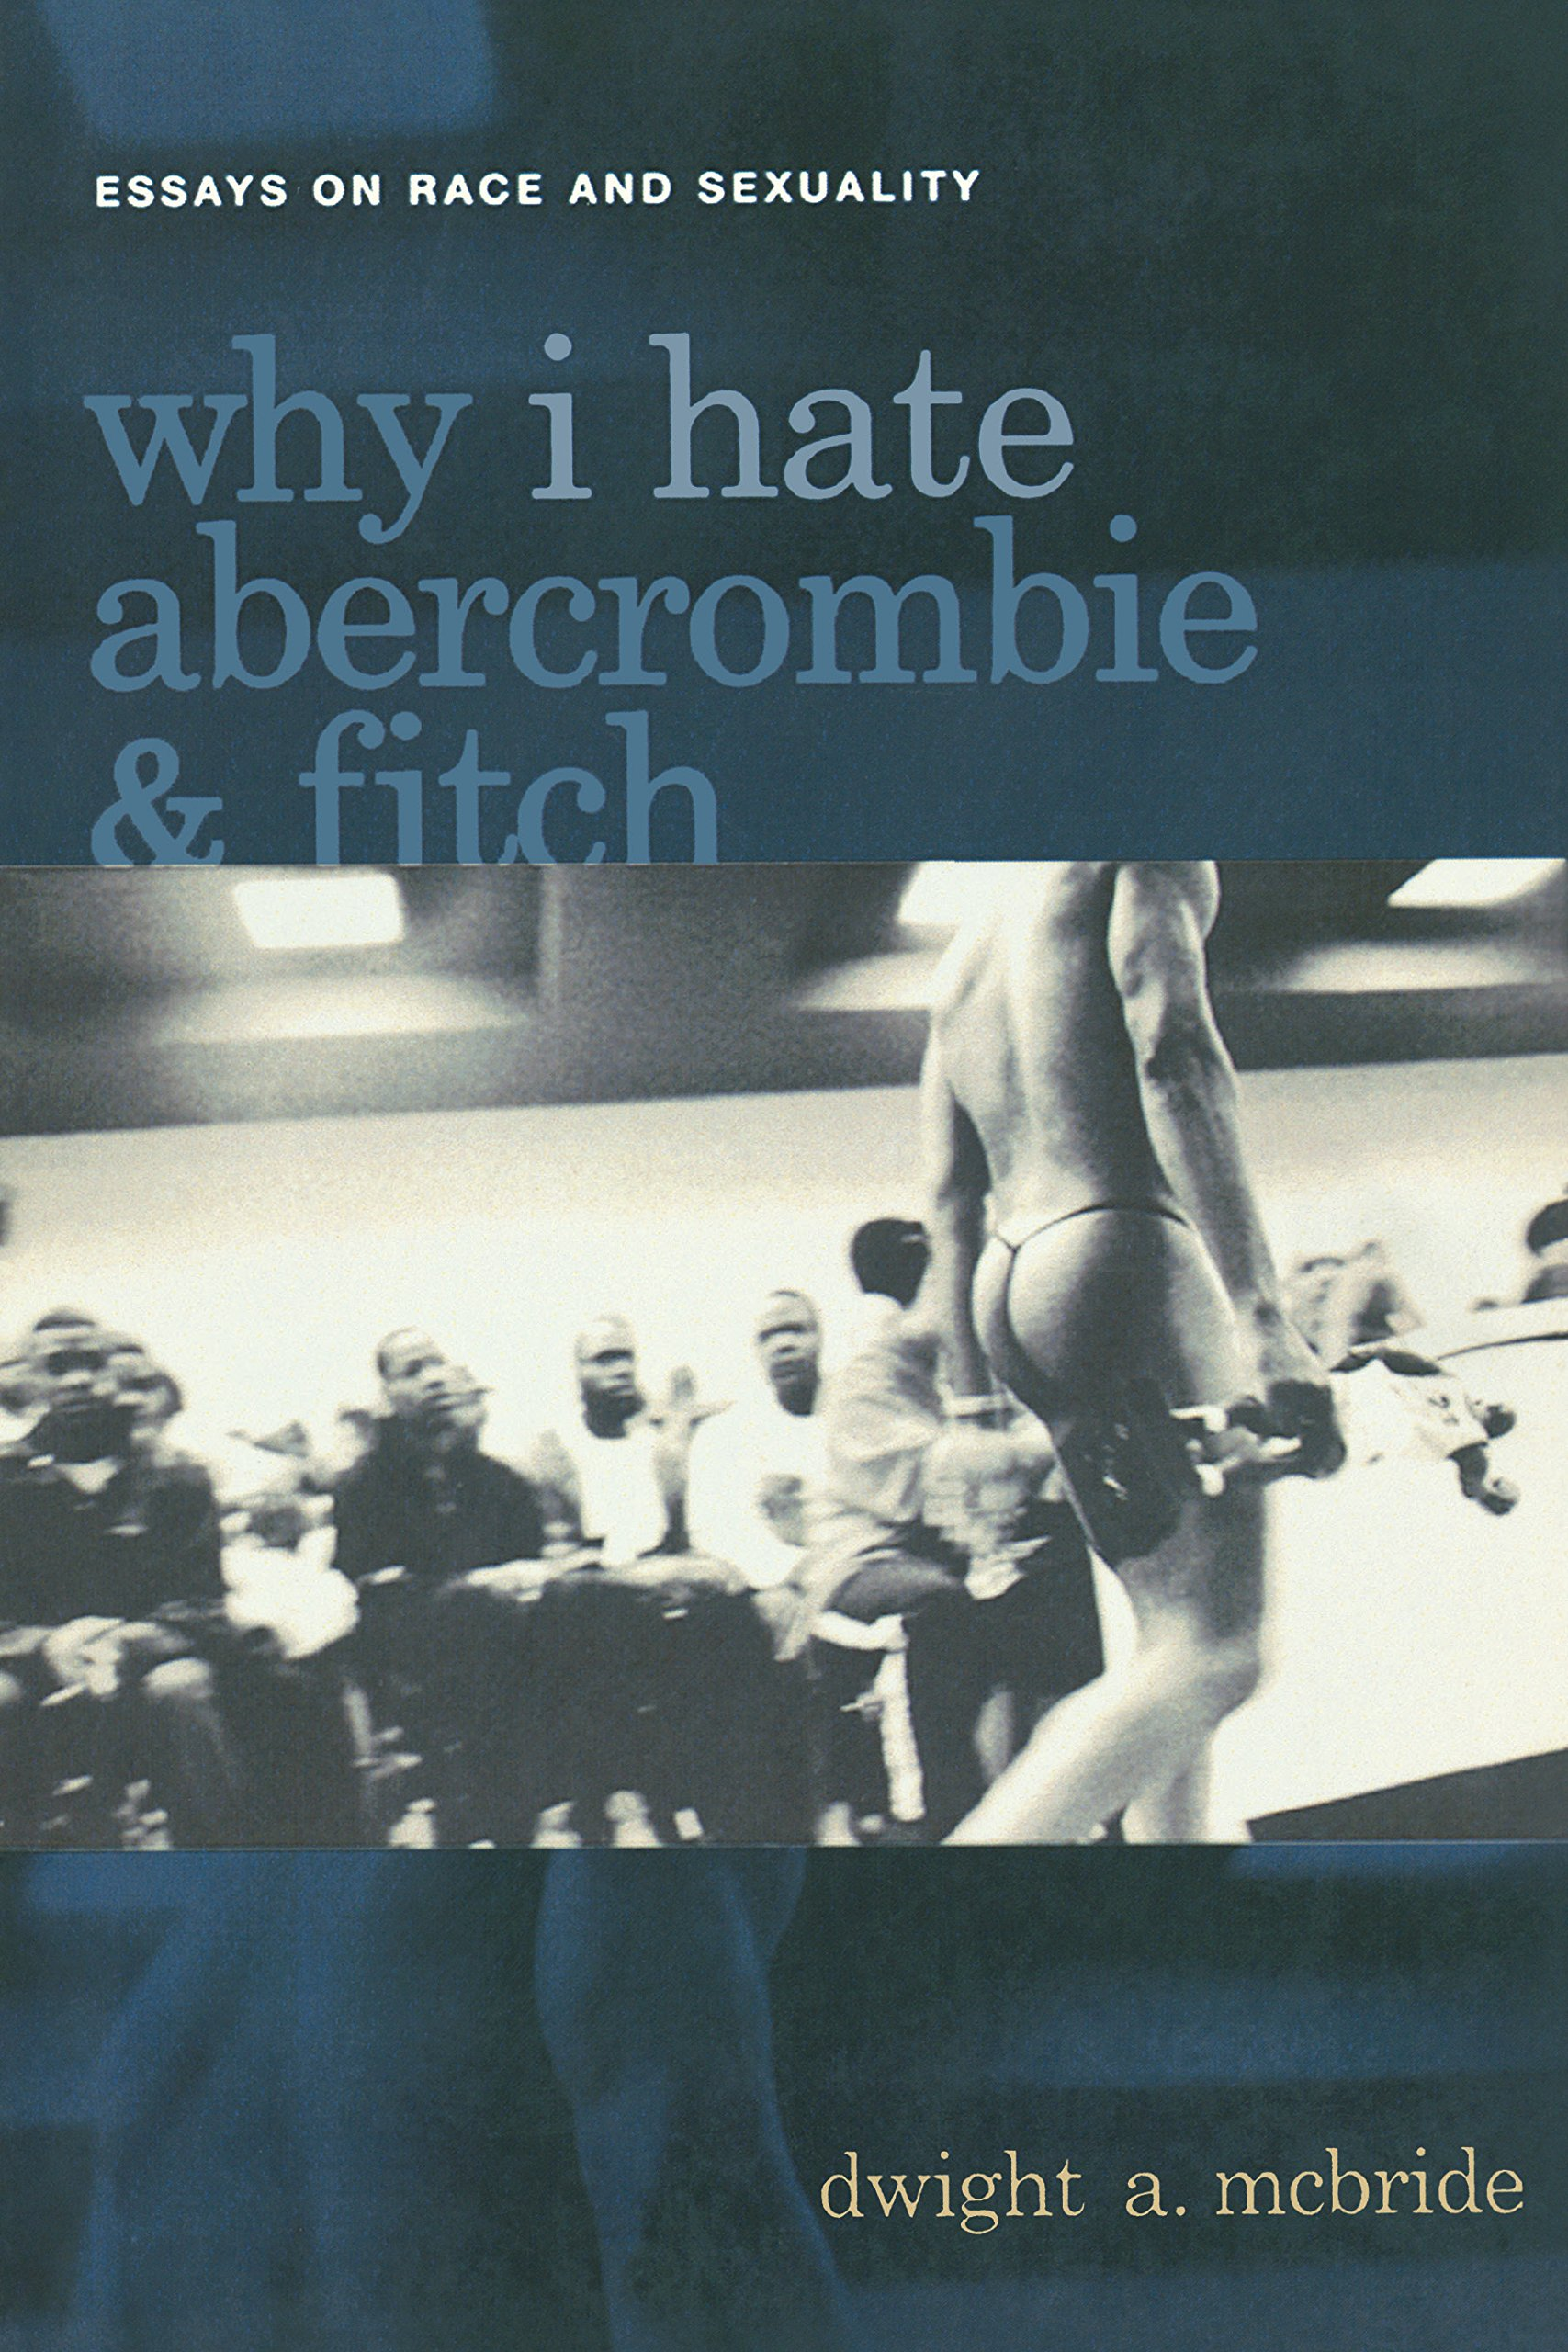 why i hate abercrombie fitch essays on race and sexuality why i hate abercrombie fitch essays on race and sexuality sexual cultures co uk dwight mcbride 9780814756867 books